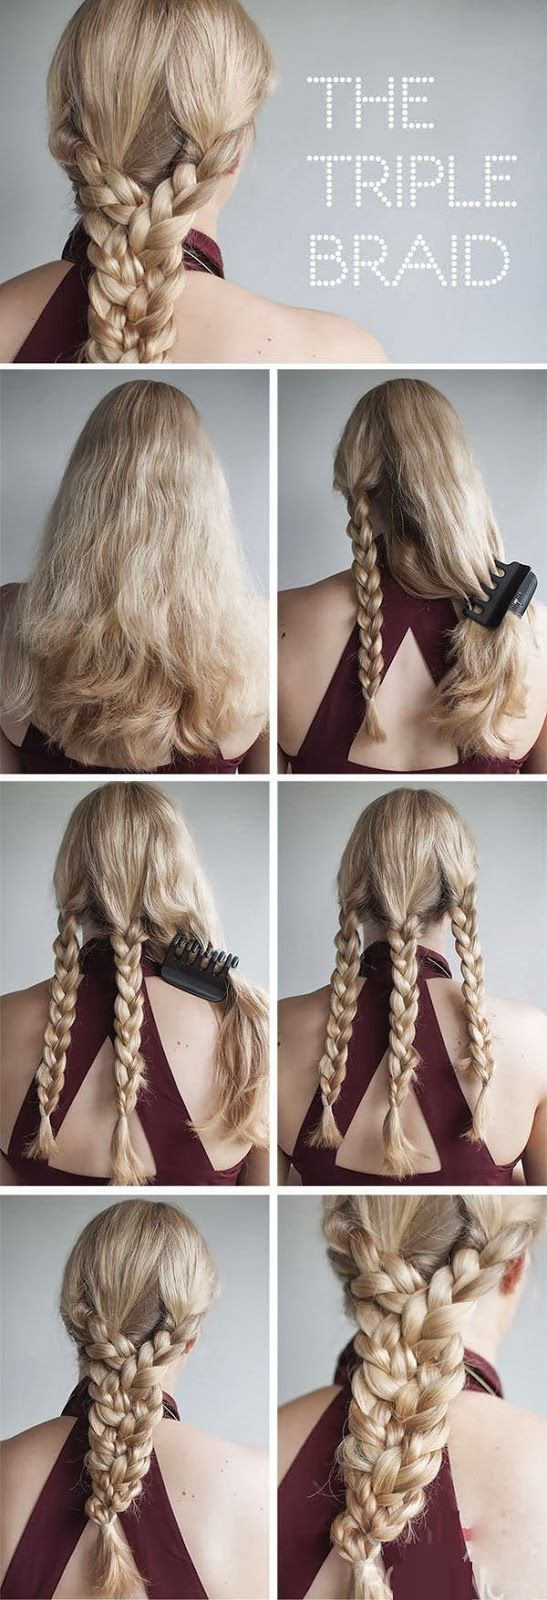 Hairstyle Tutorials Custom 23 Best Hair Style Images On Pinterest  Cute Hairstyles Hairstyle